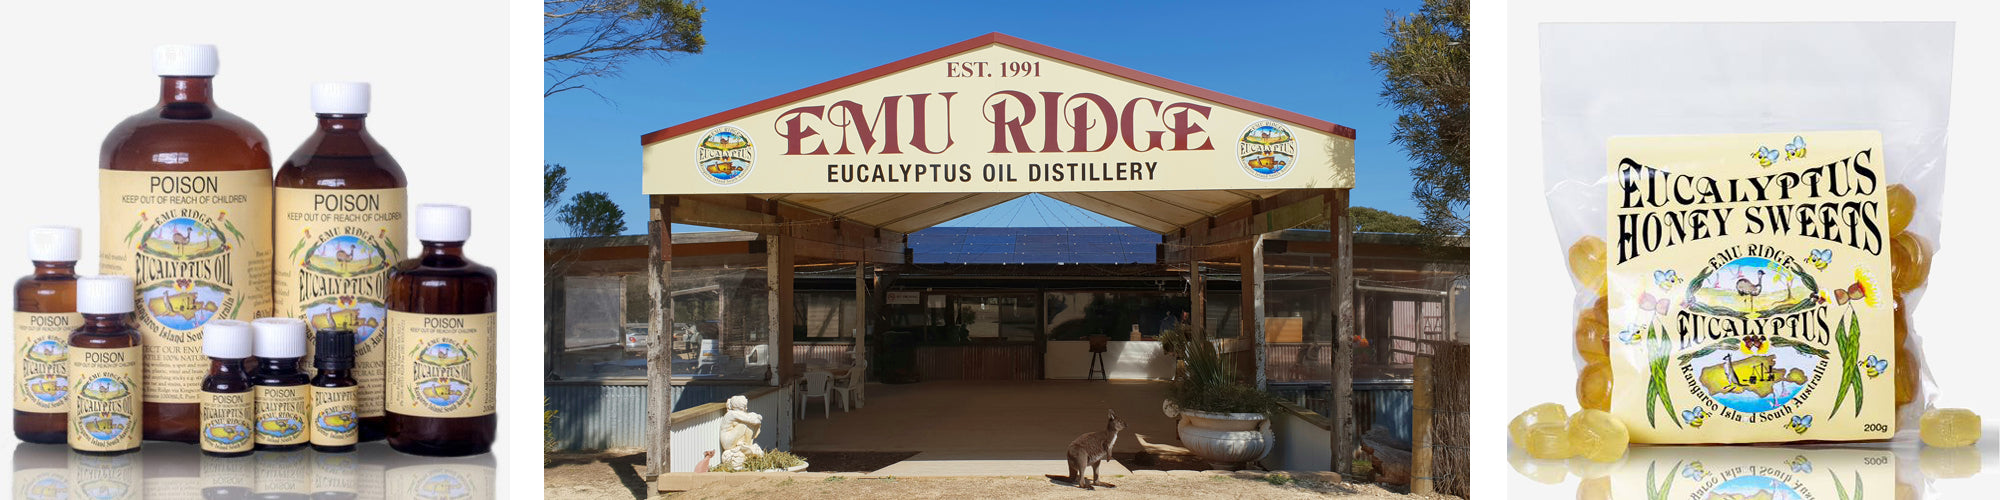 Emu Ridge Eucalyptus Products and Oil Distillery Shop Front